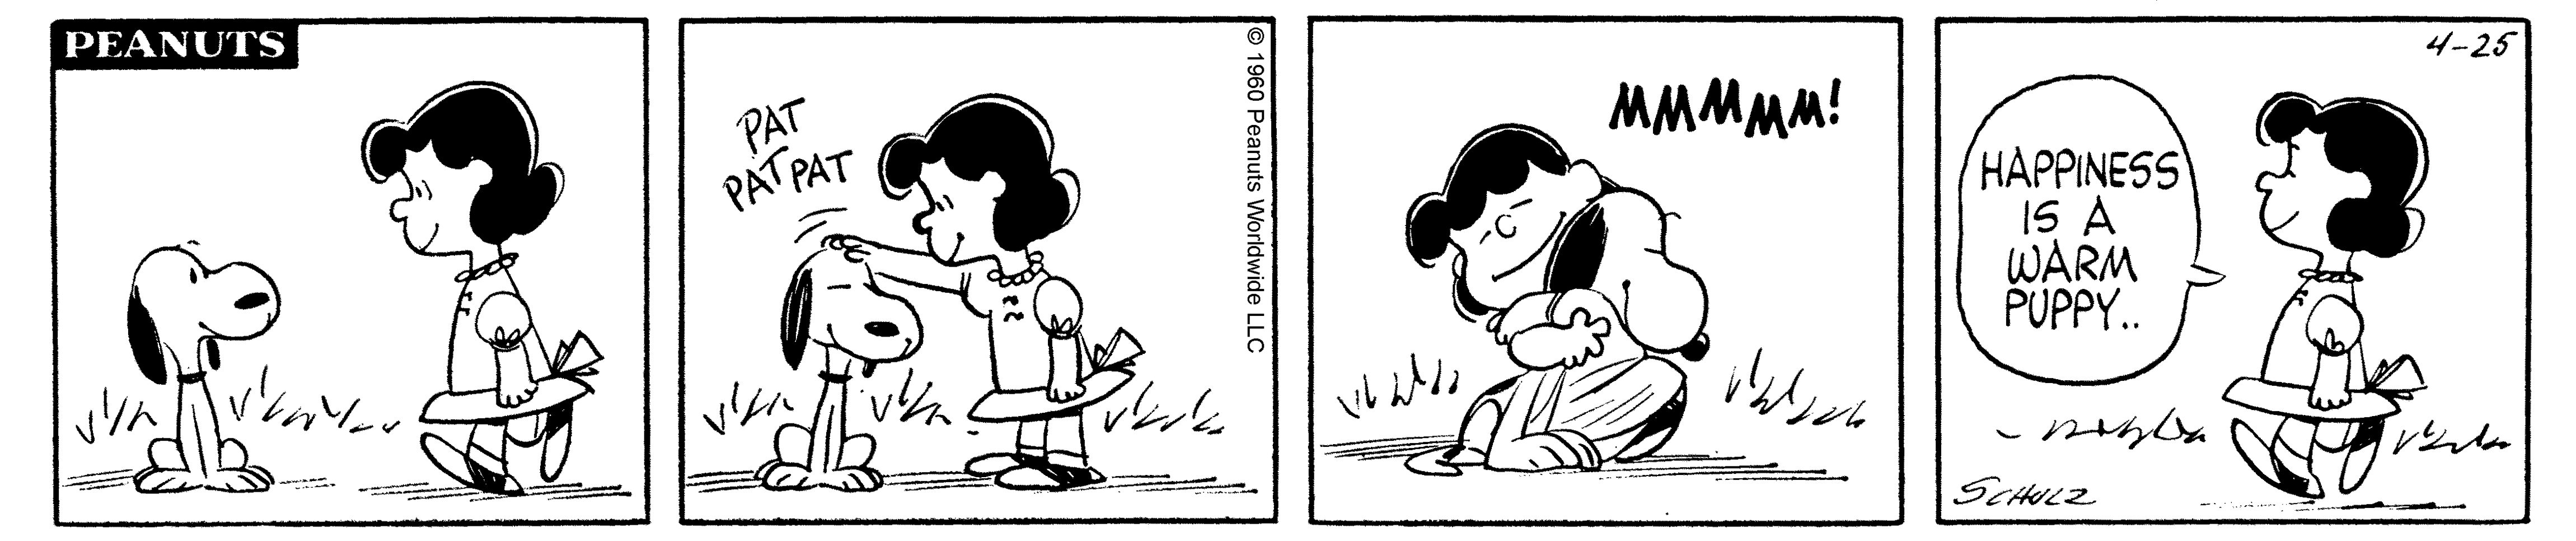 A black and white comic strip of a girl hugging and petting a dog.